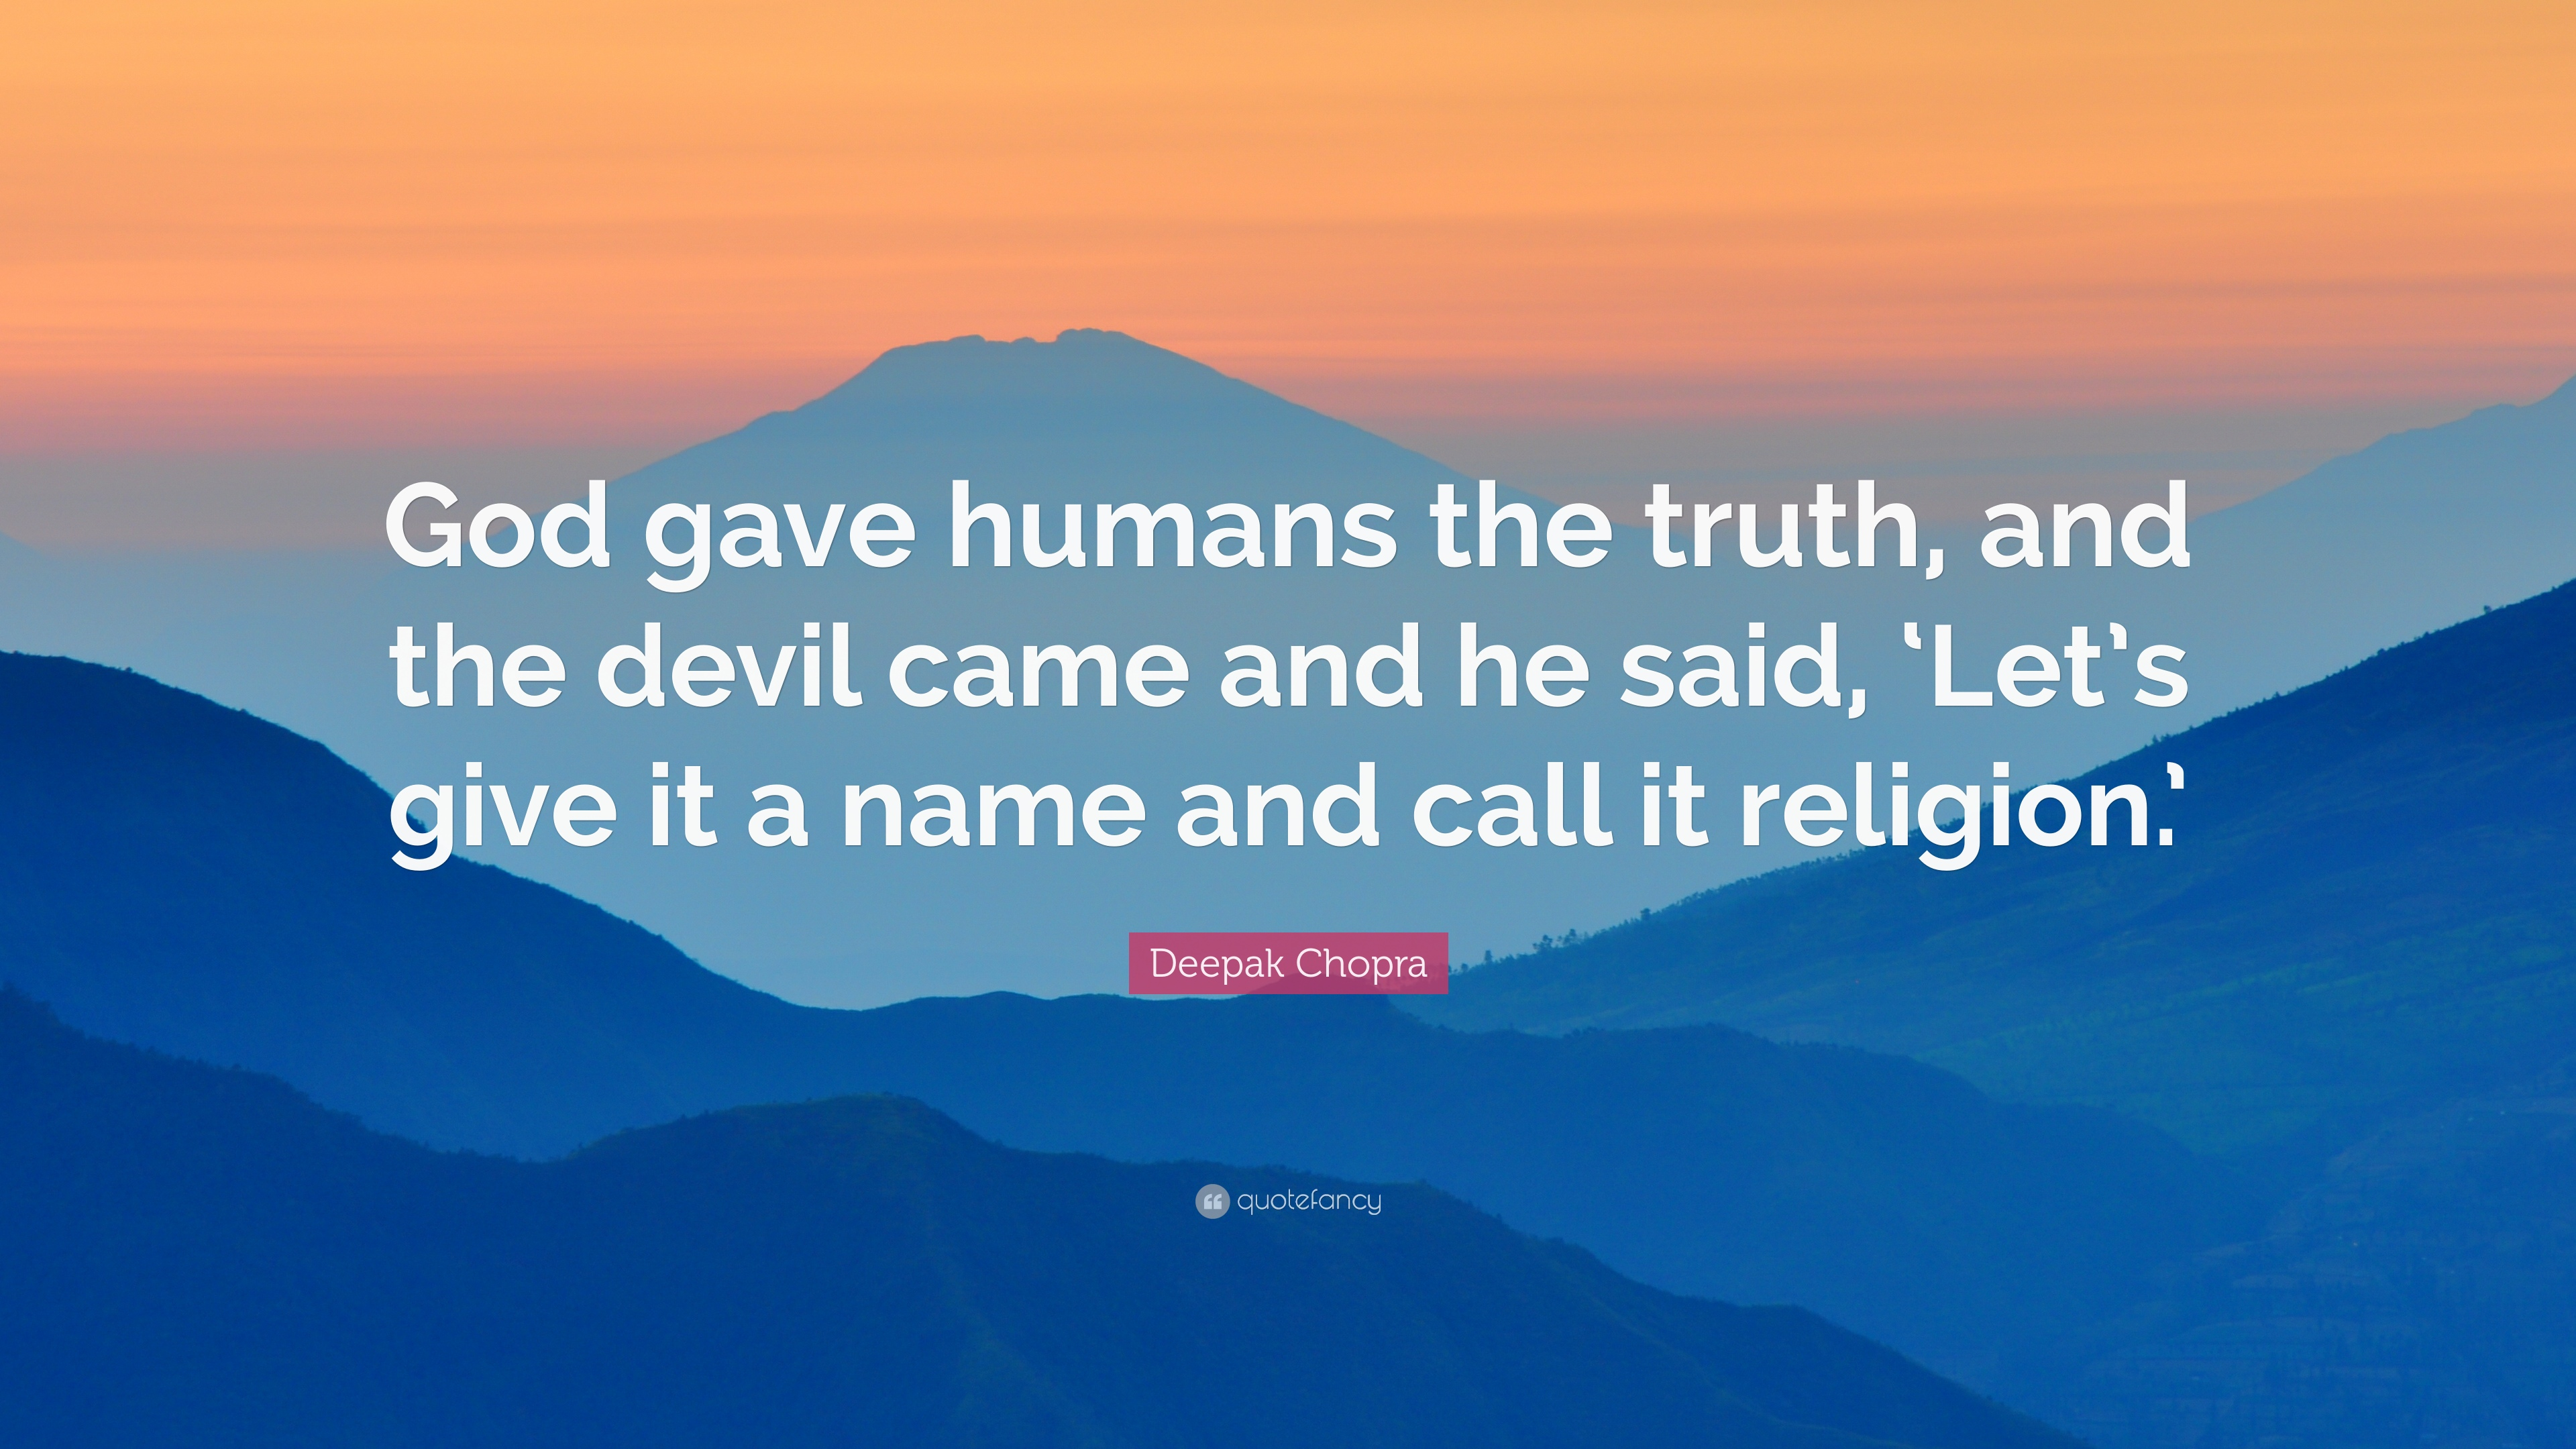 Wonderful Wallpaper Name Deepak - 157741-Deepak-Chopra-Quote-God-gave-humans-the-truth-and-the-devil-came  2018_751023.jpg